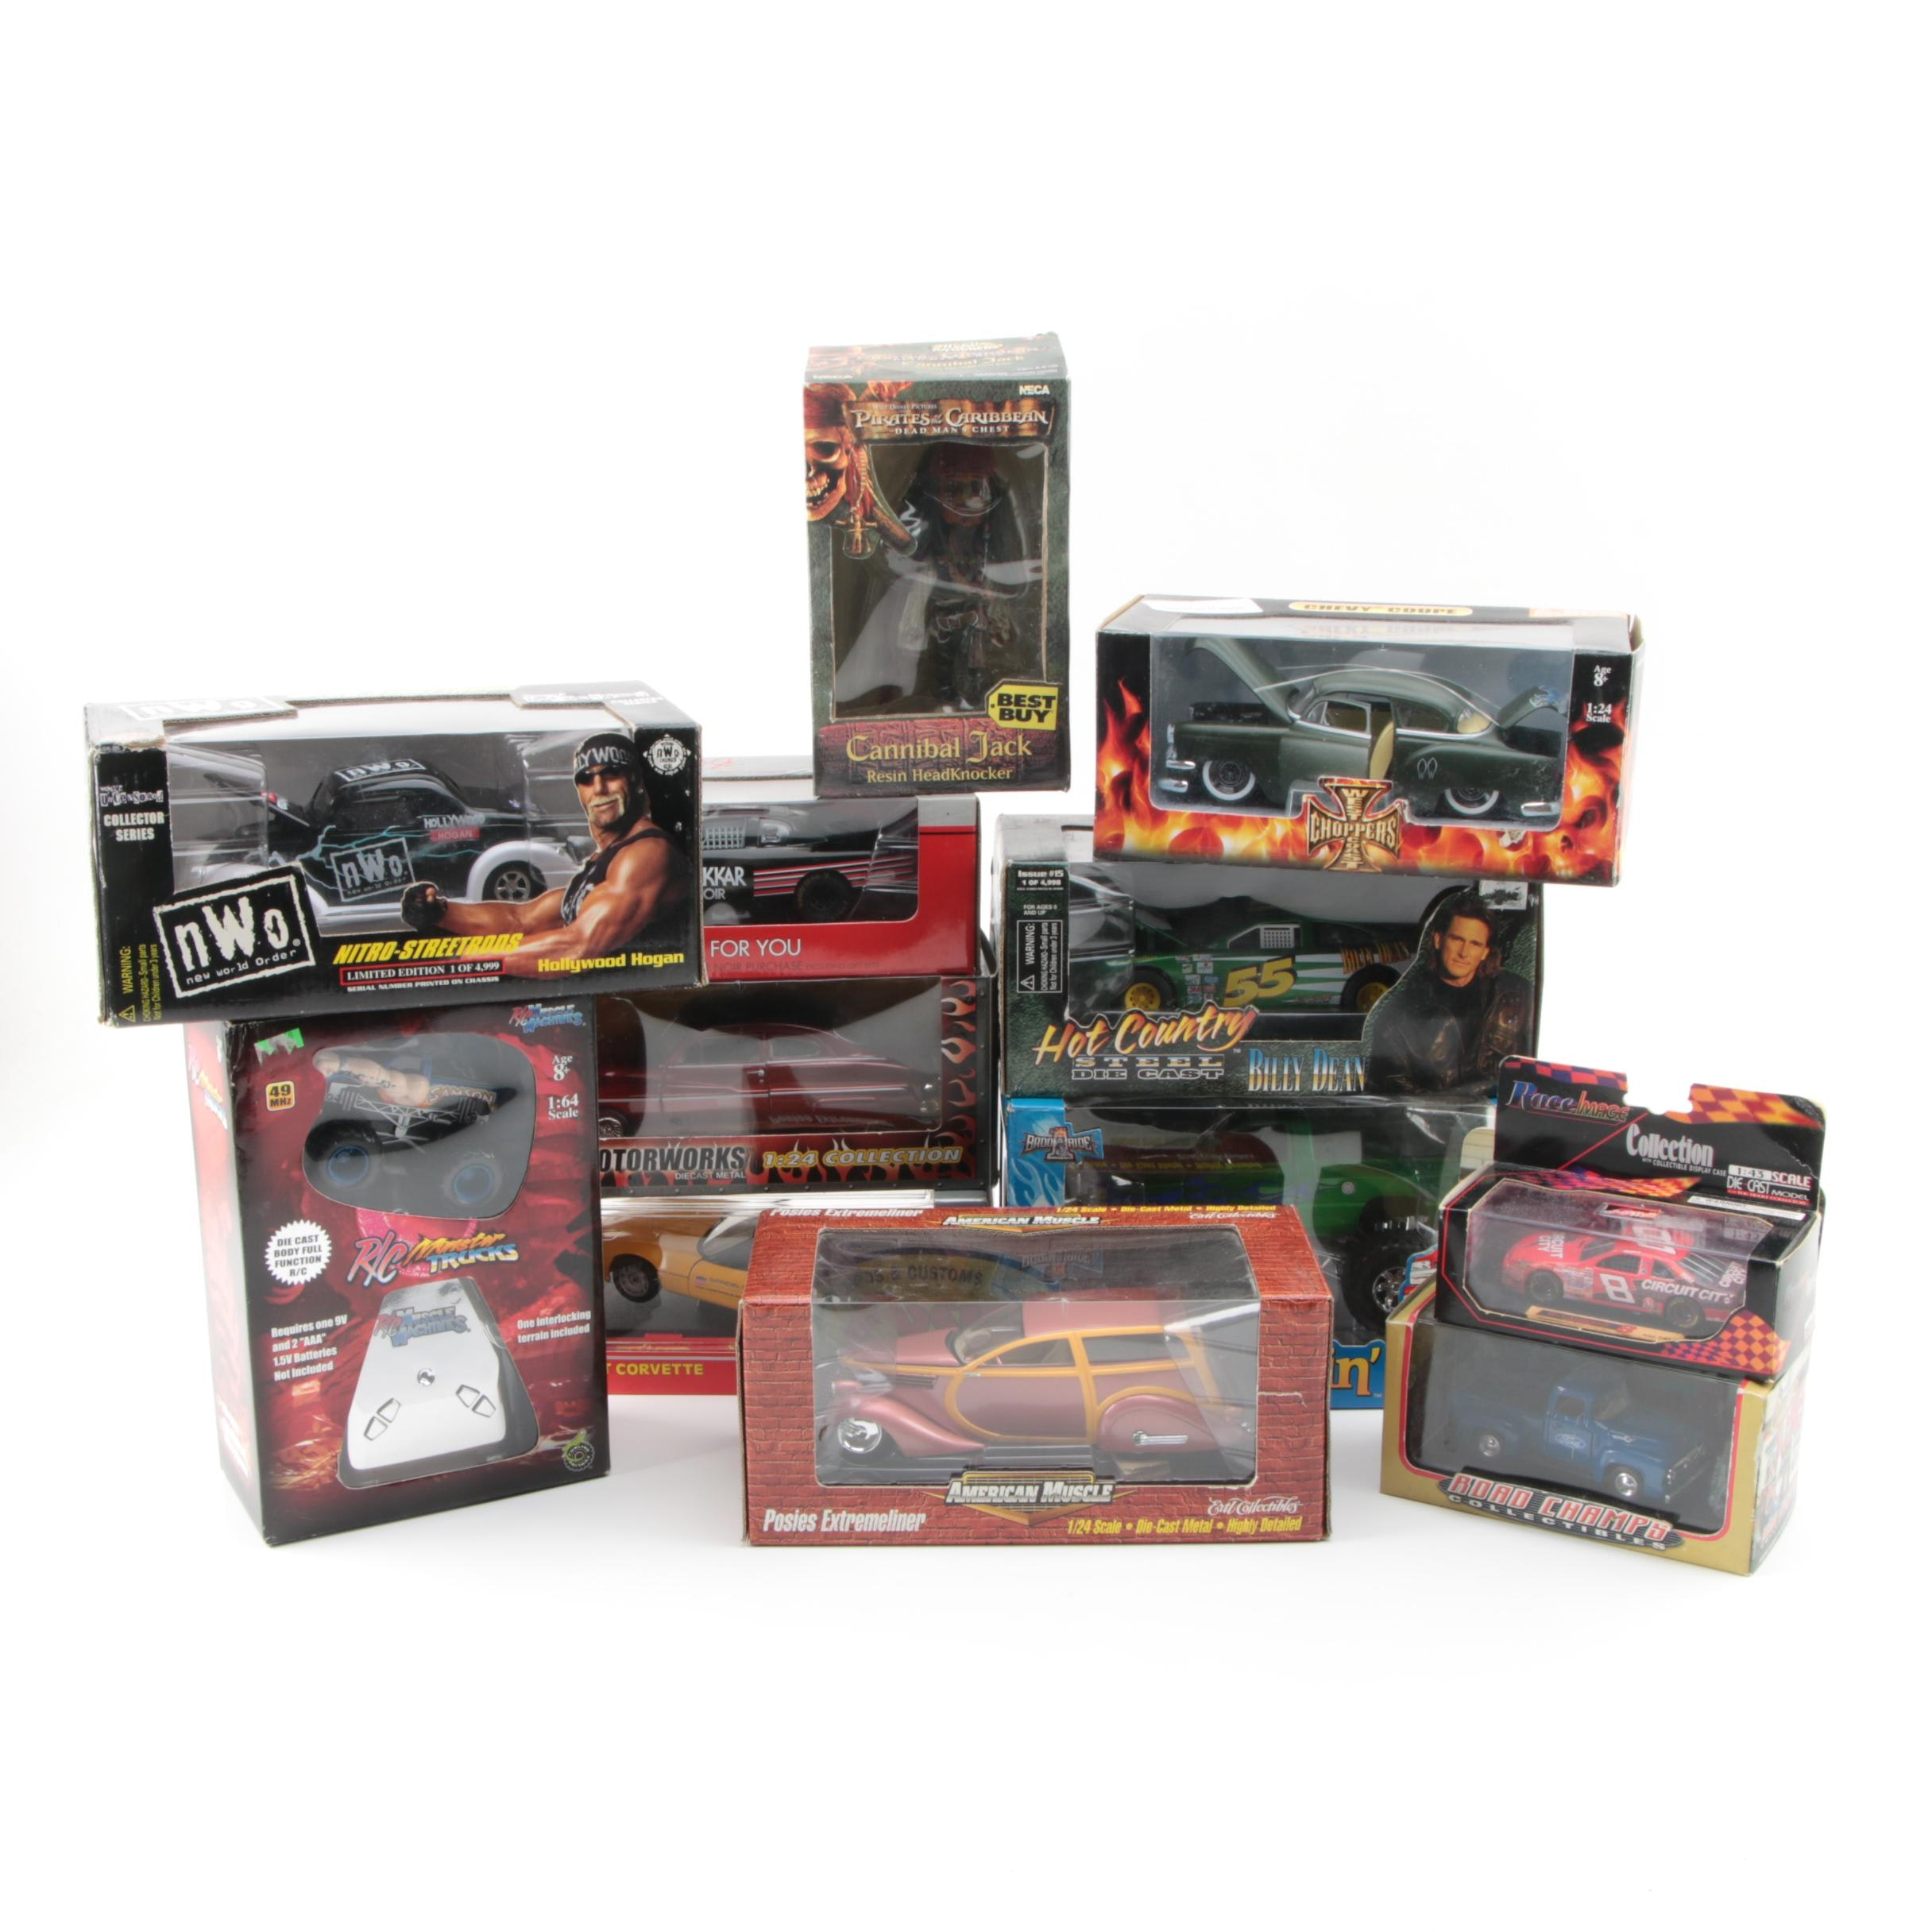 "Die-Cast Cars, ""Pirates of the Caribbean"" Action Figure, and R/C Truck"